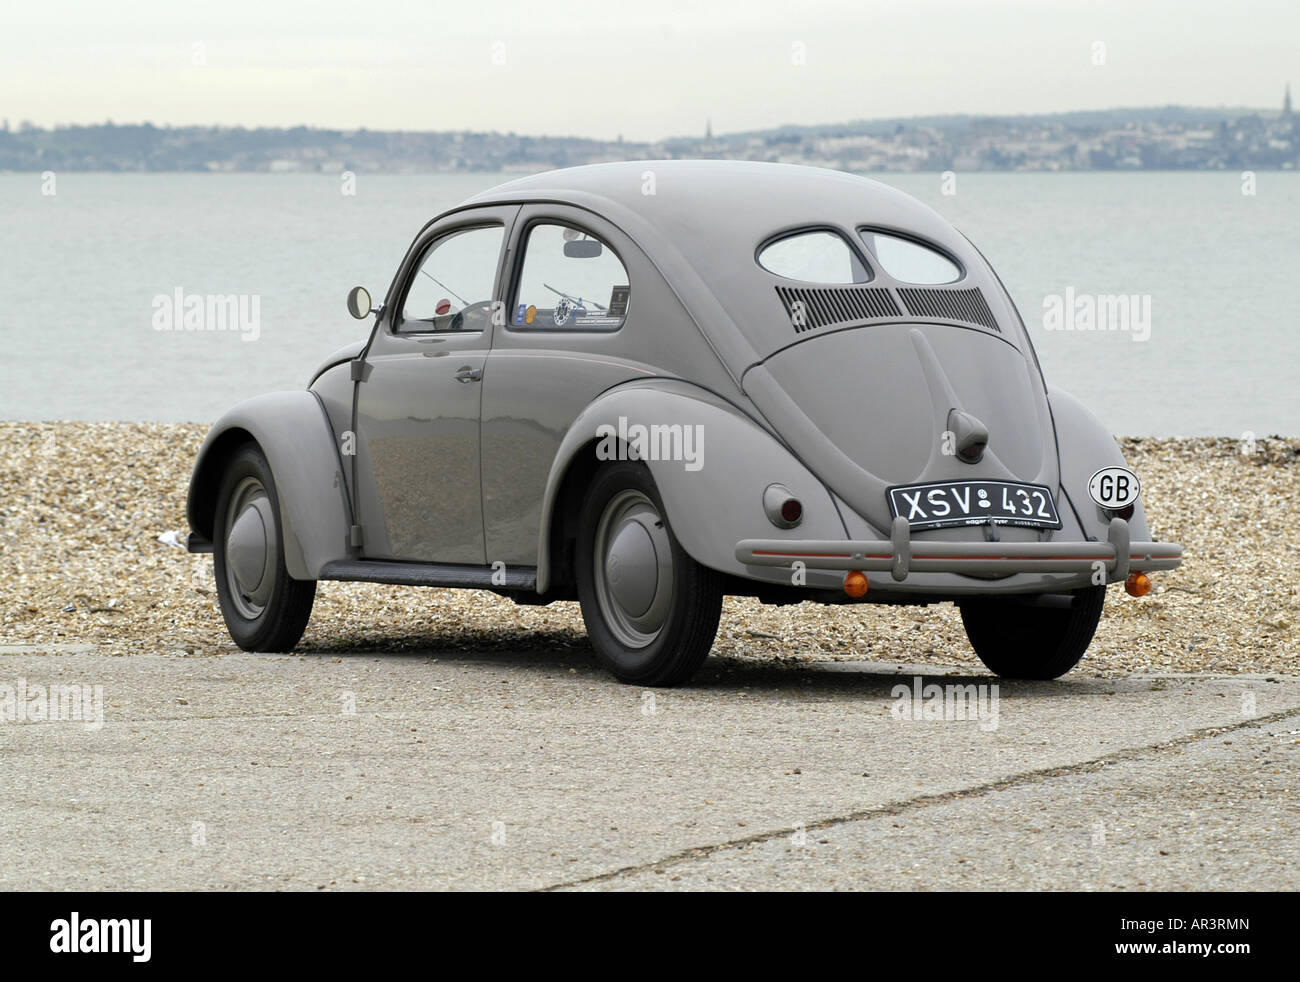 1951 VW Volkswagen Beetle split oval rear window - Stock Image